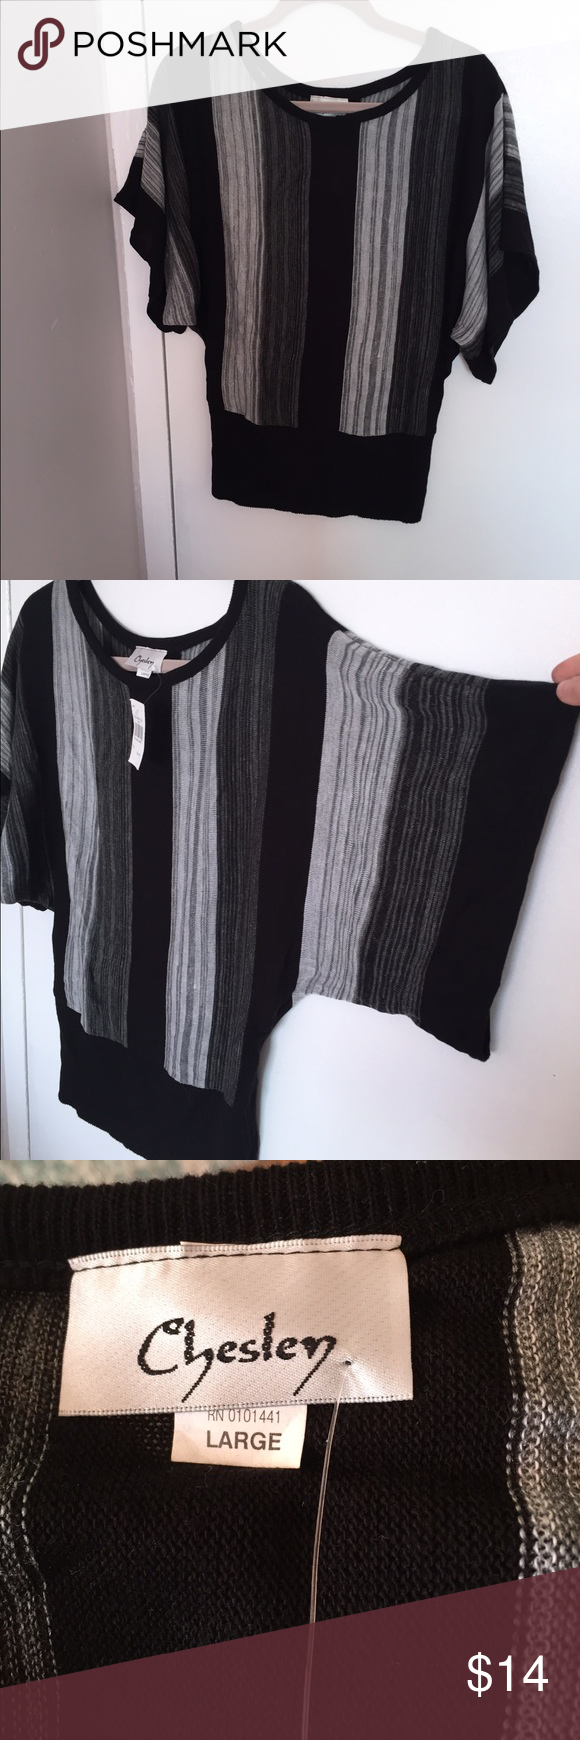 NWOT Black/Gray Kimono Sleeve Top Size L Never worn, 100% Acrylic knit top, I have another one in the closet that is pink and black in a size Medium. This top in Large measures 26 inches long top to bottom and chest of 20 lying down. Chesley Tops Blouses